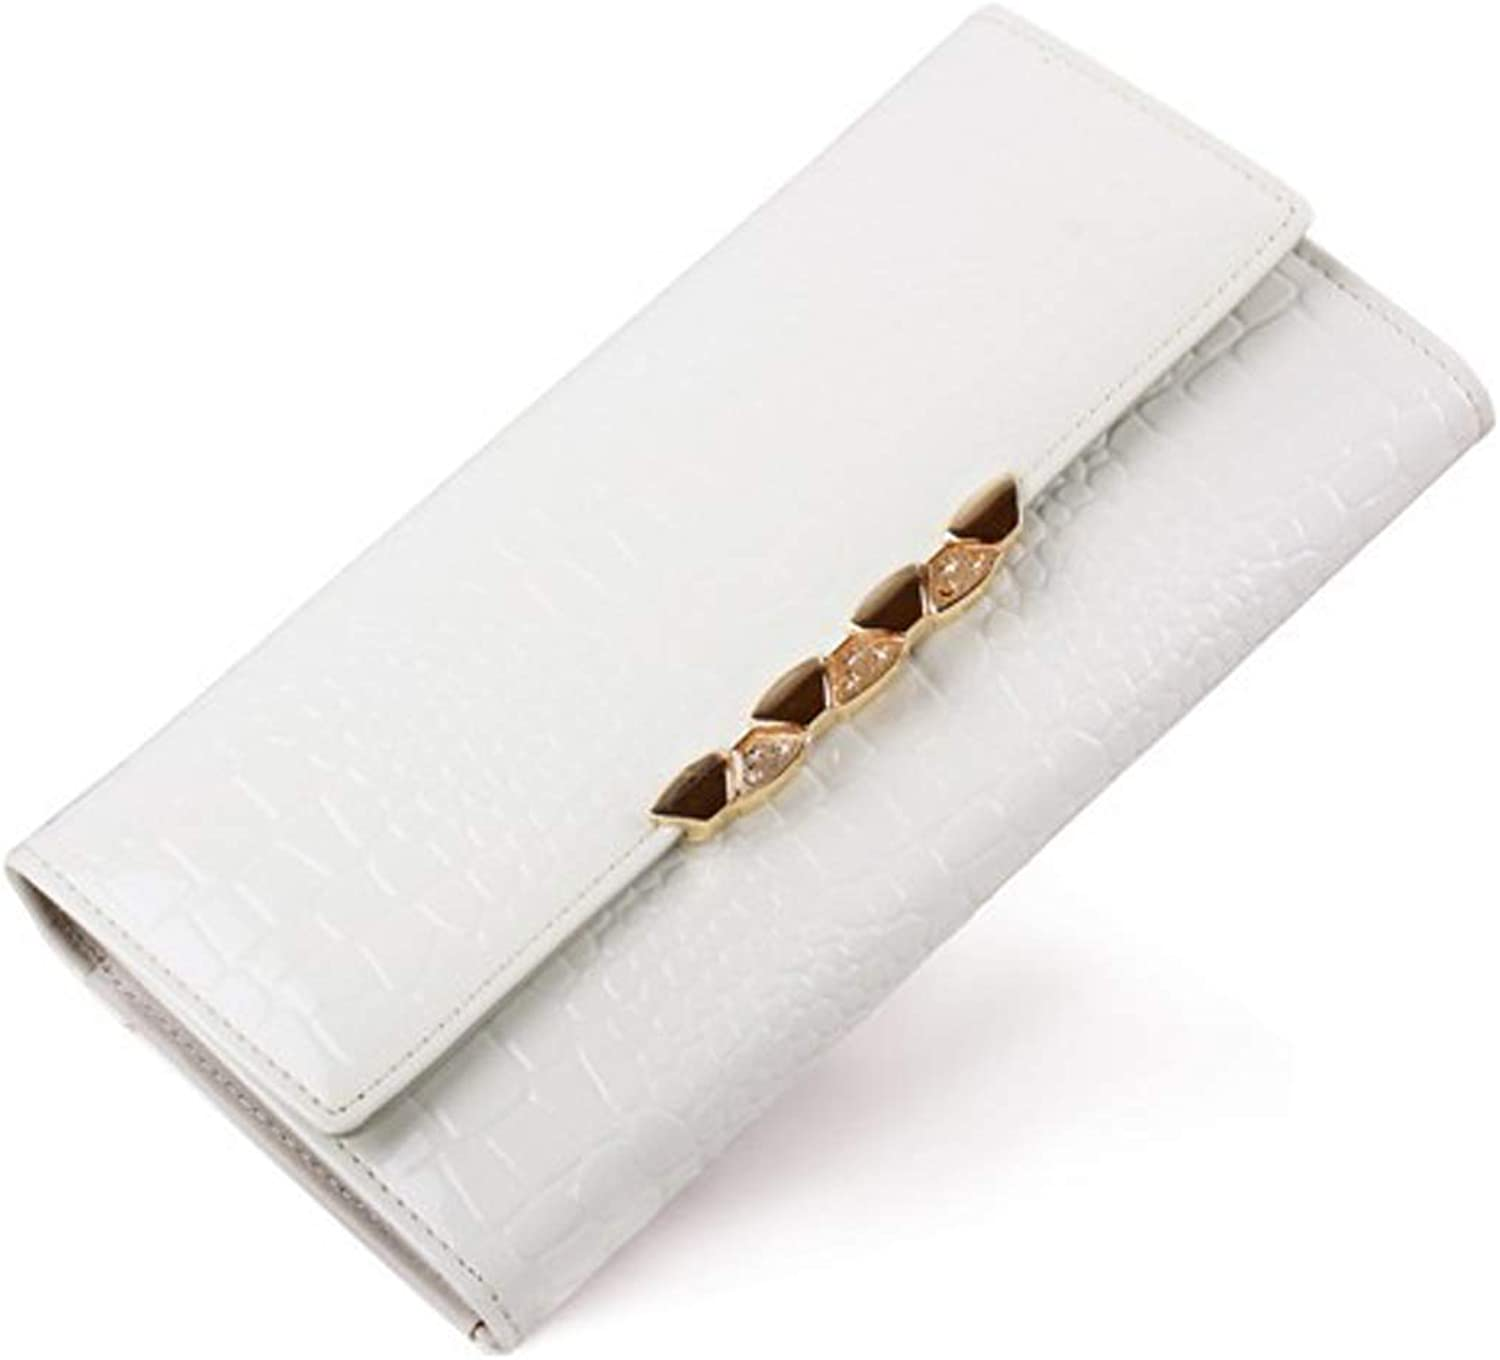 Cross White Wallet Ladies Folded Wallet Long Wallet Leather for Ladies Leather Mobile Suitable for A Convenient Gift for Work (color   White)